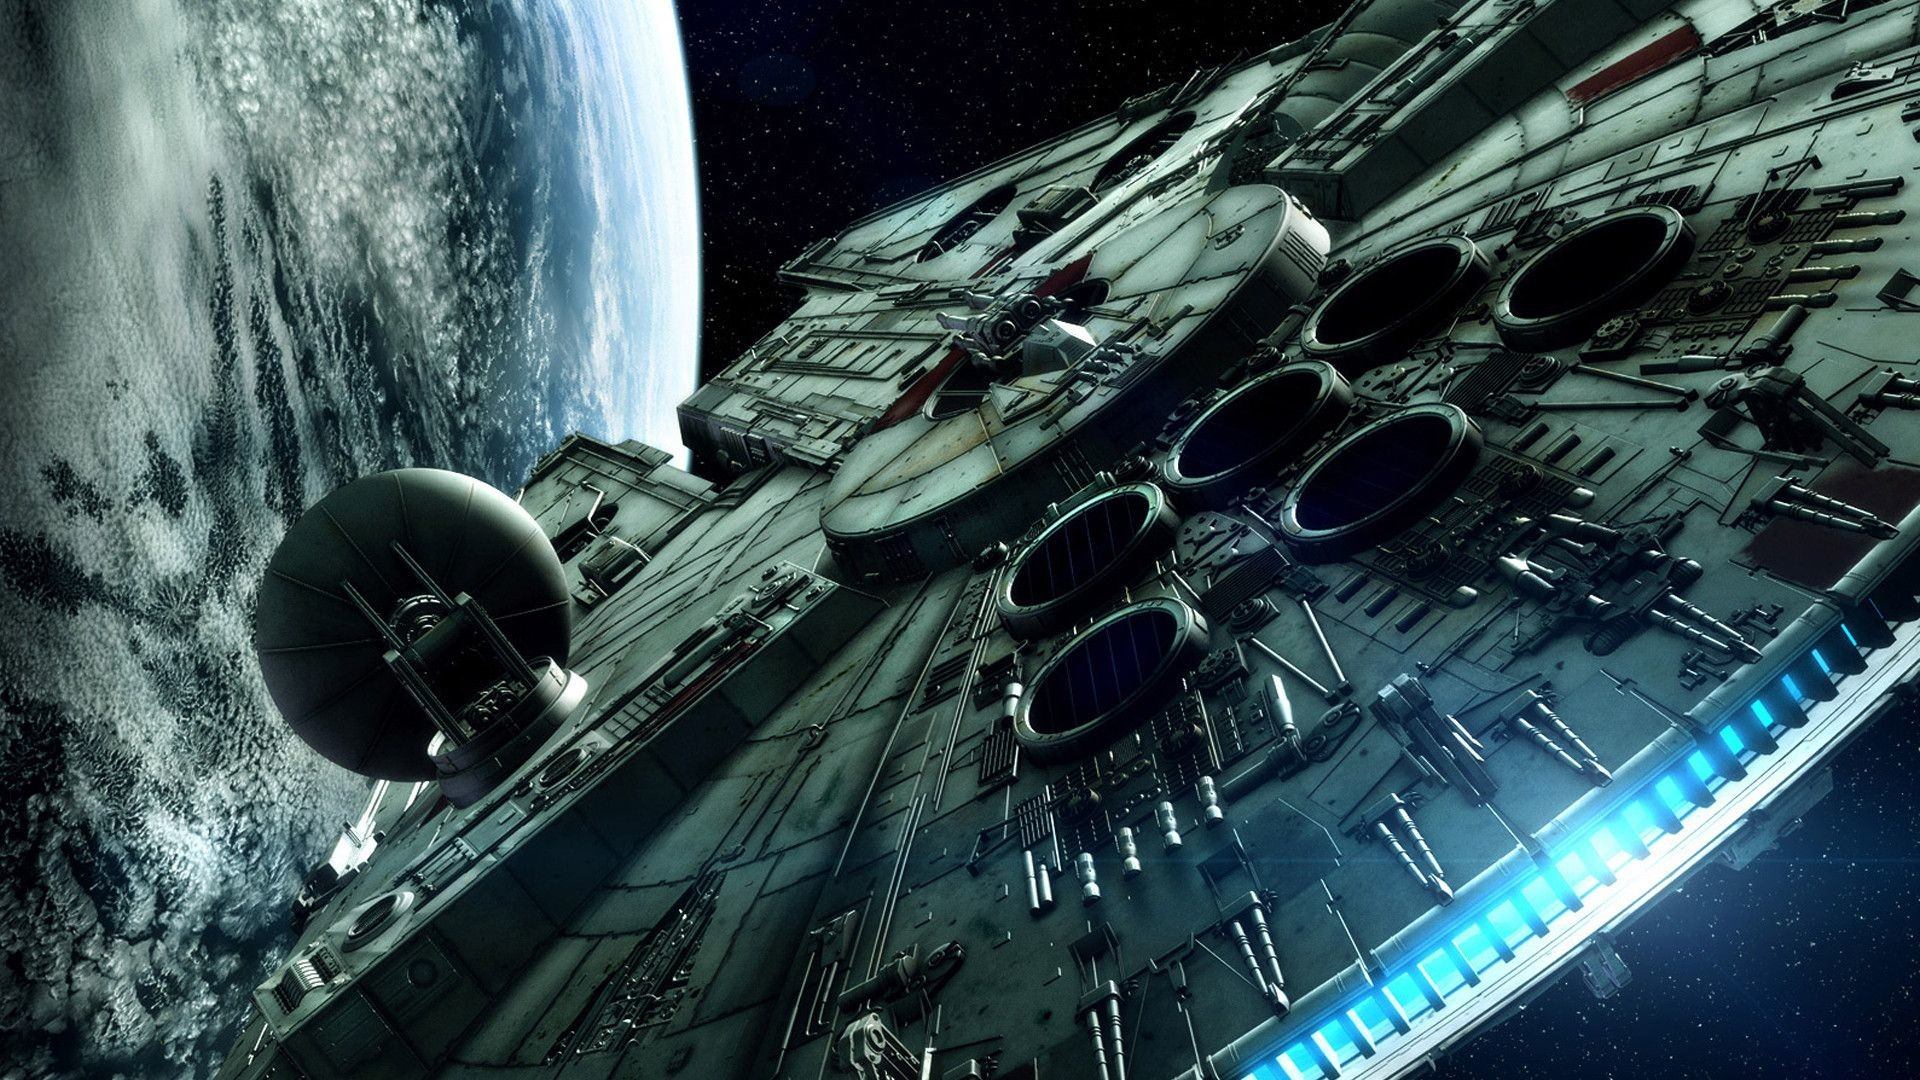 Star Wars Wallpaper Hd 1080p 71 Images